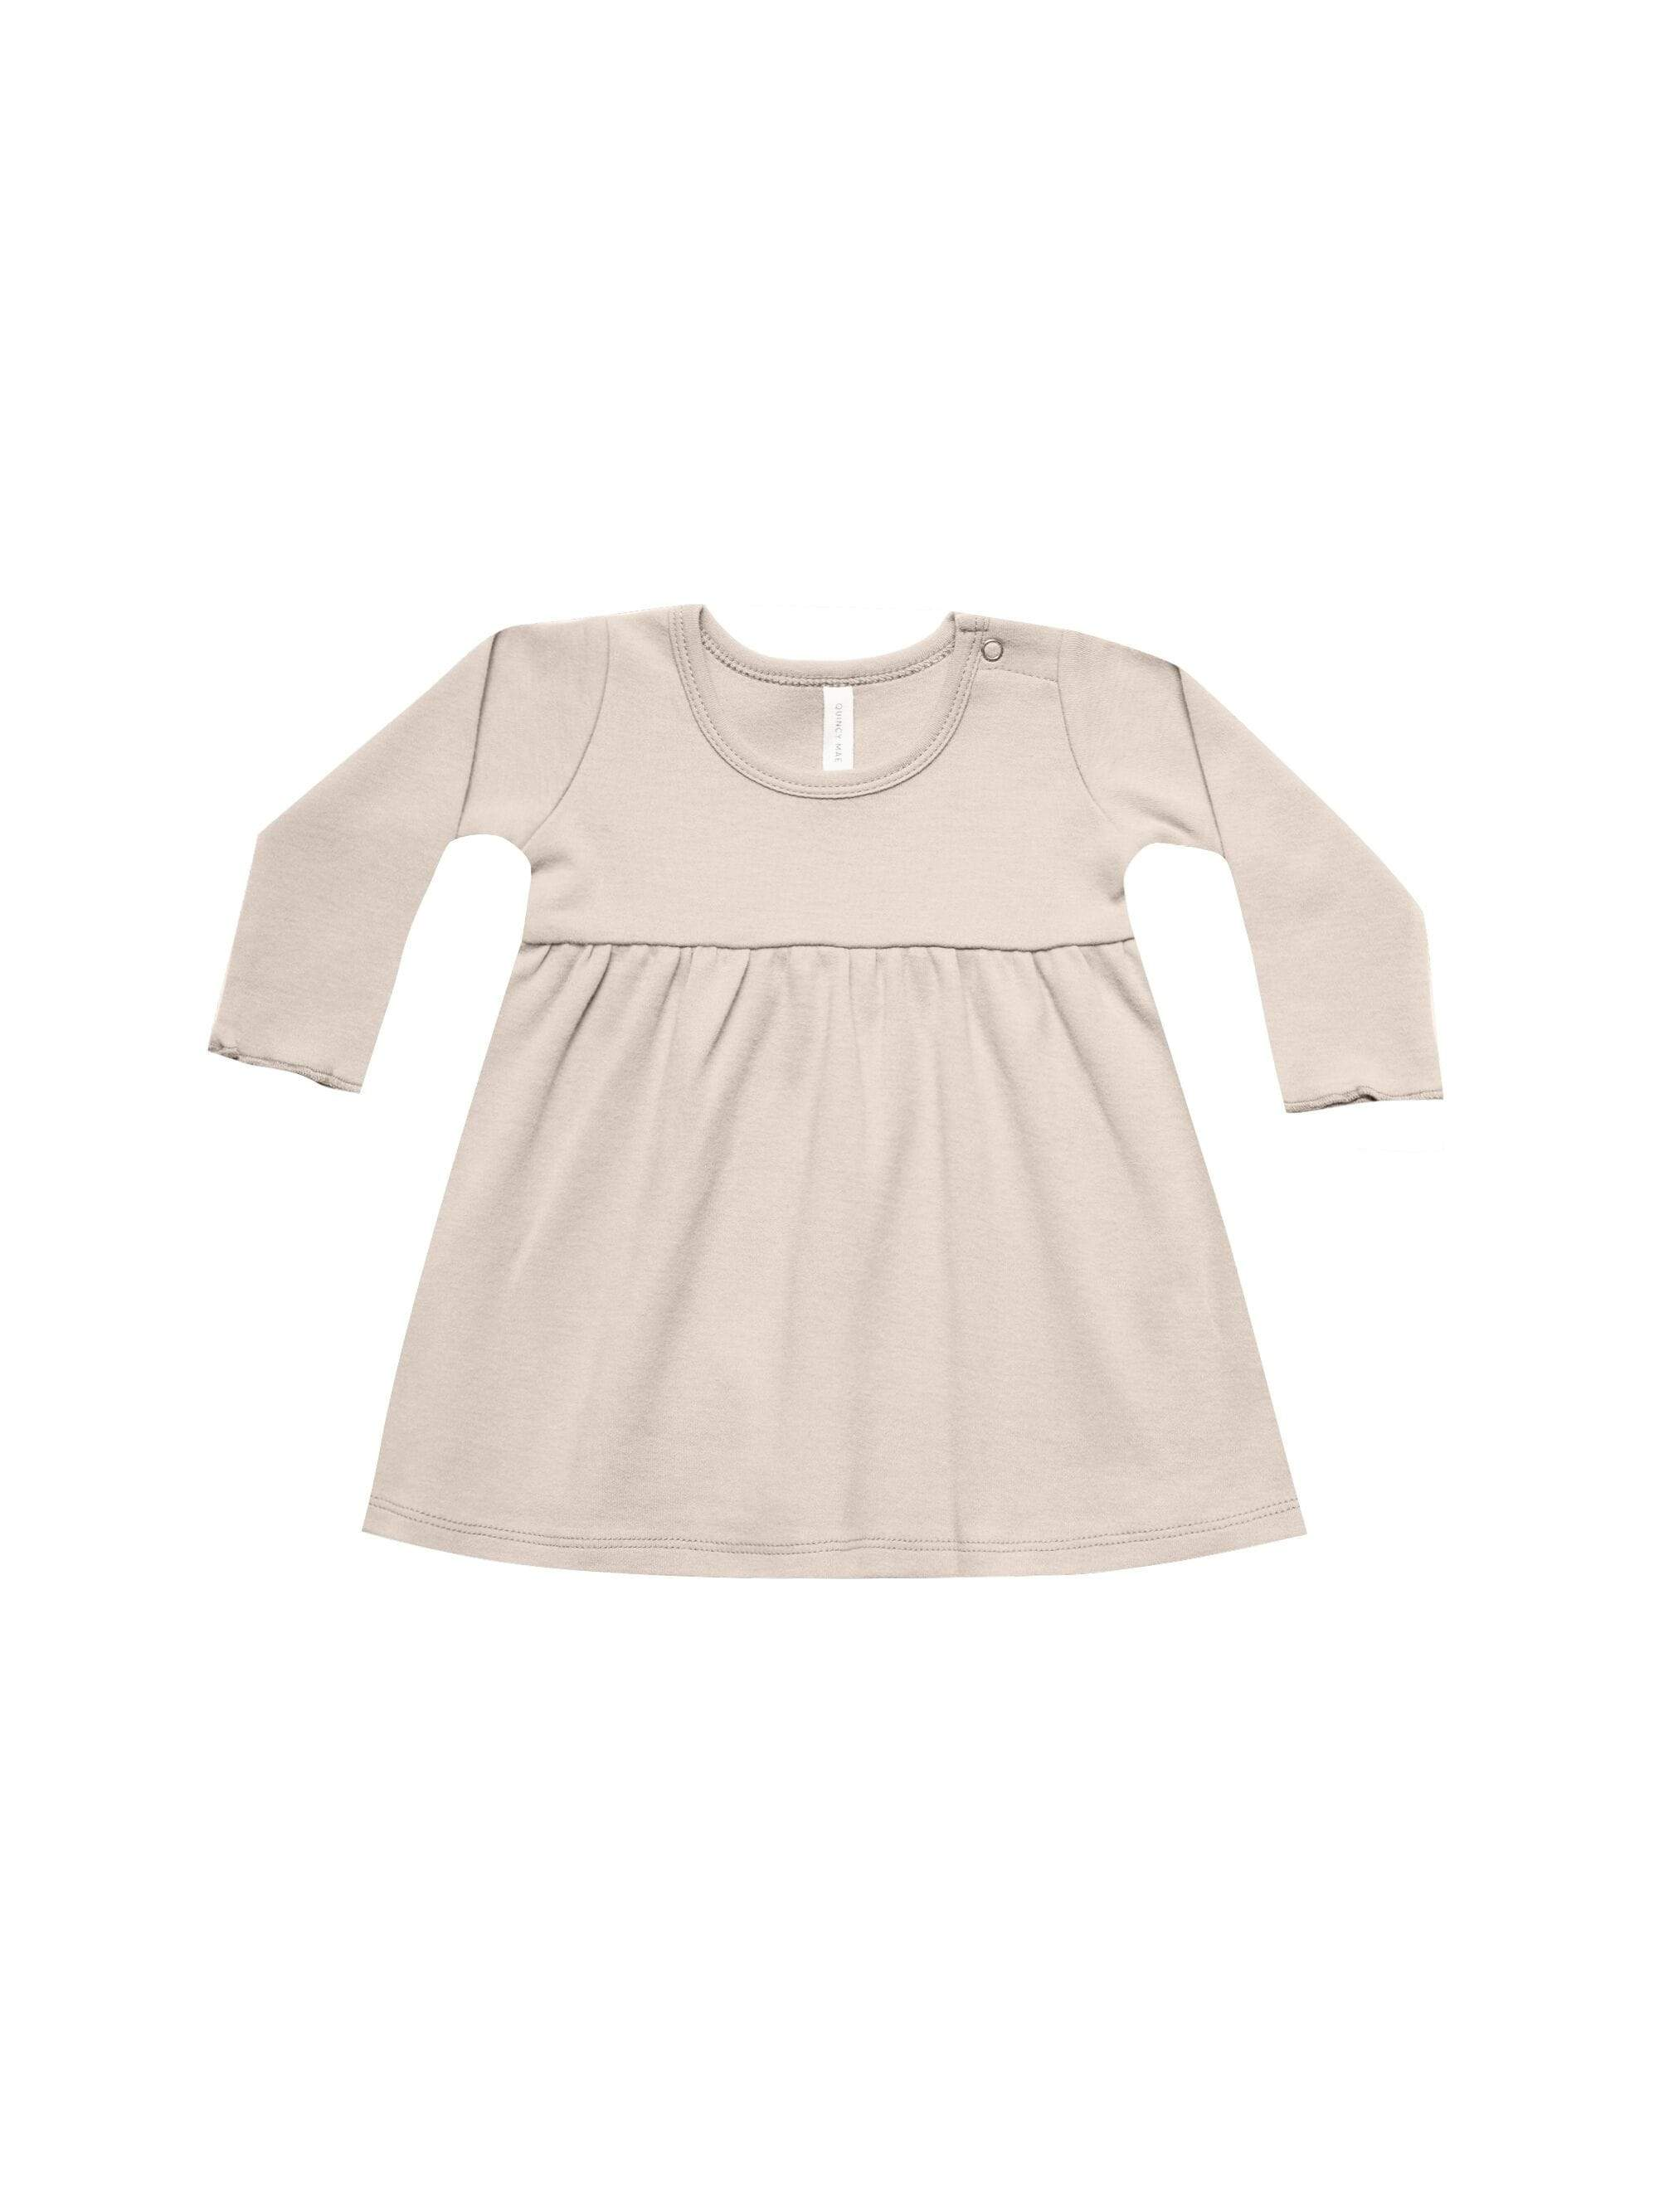 Quincy Mae Dresses 12-18 / Rose Quincy Mae Baby Dress